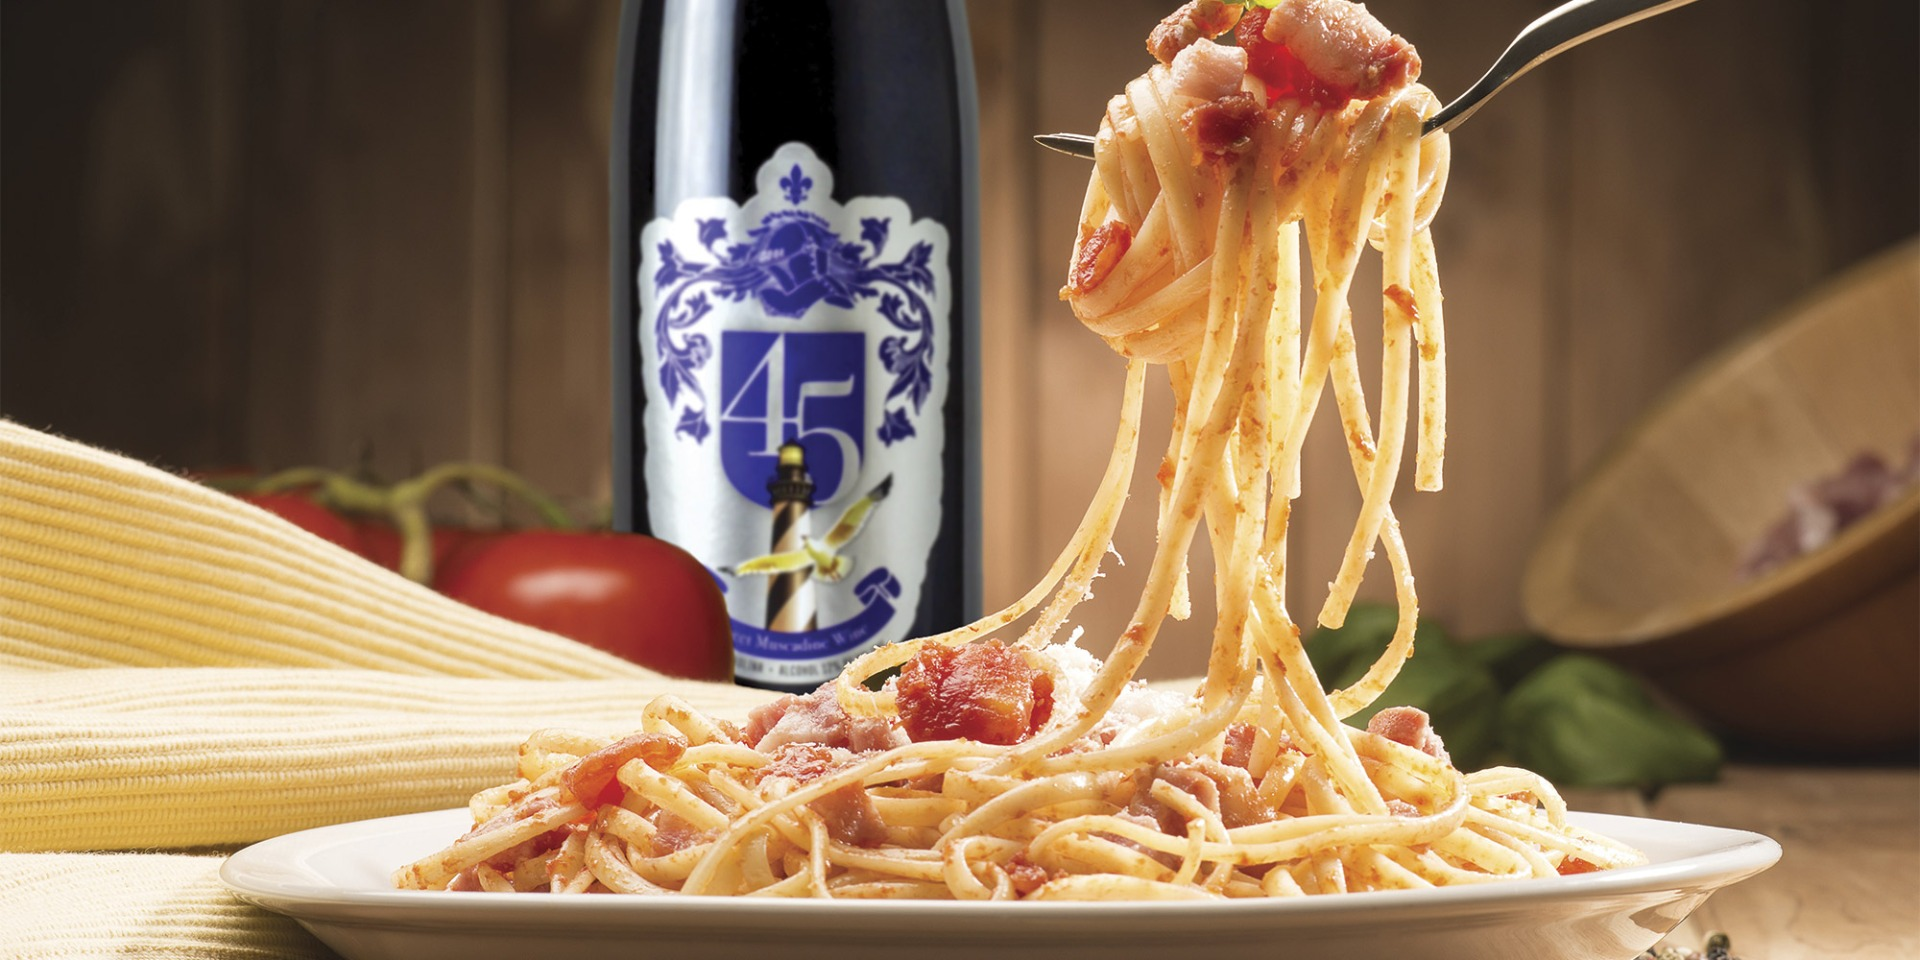 Spaghetti Night is a family tradition for the owners of Duplin Winery.